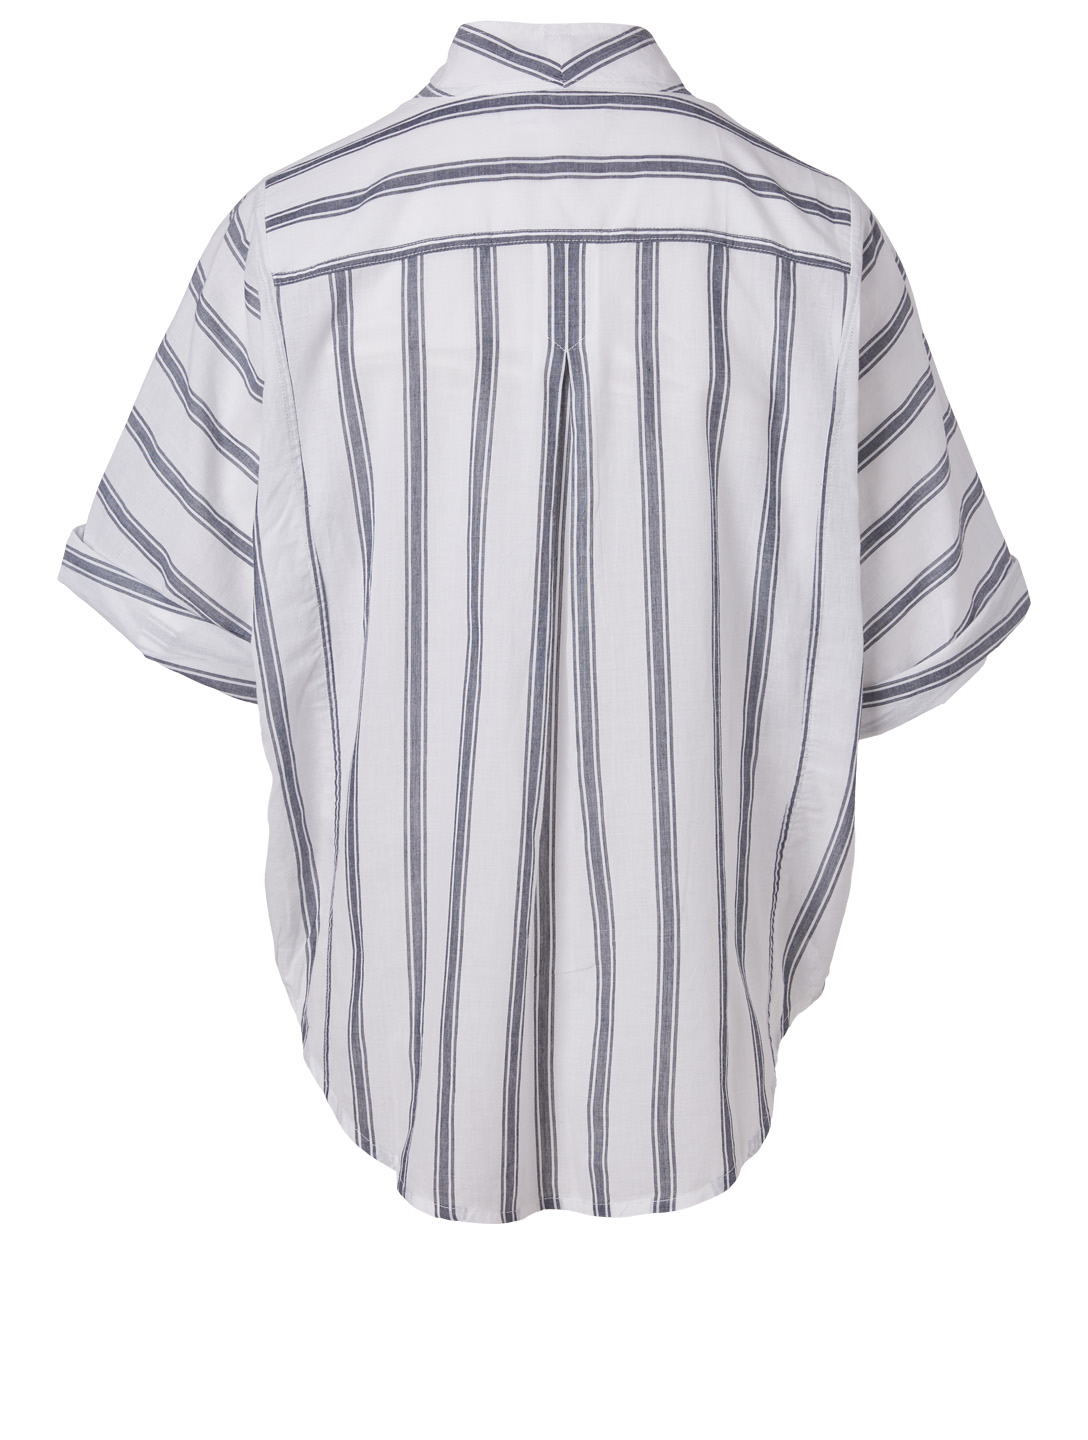 FRAME Short-Sleeve Safari Shirt In Striped Print Women's White